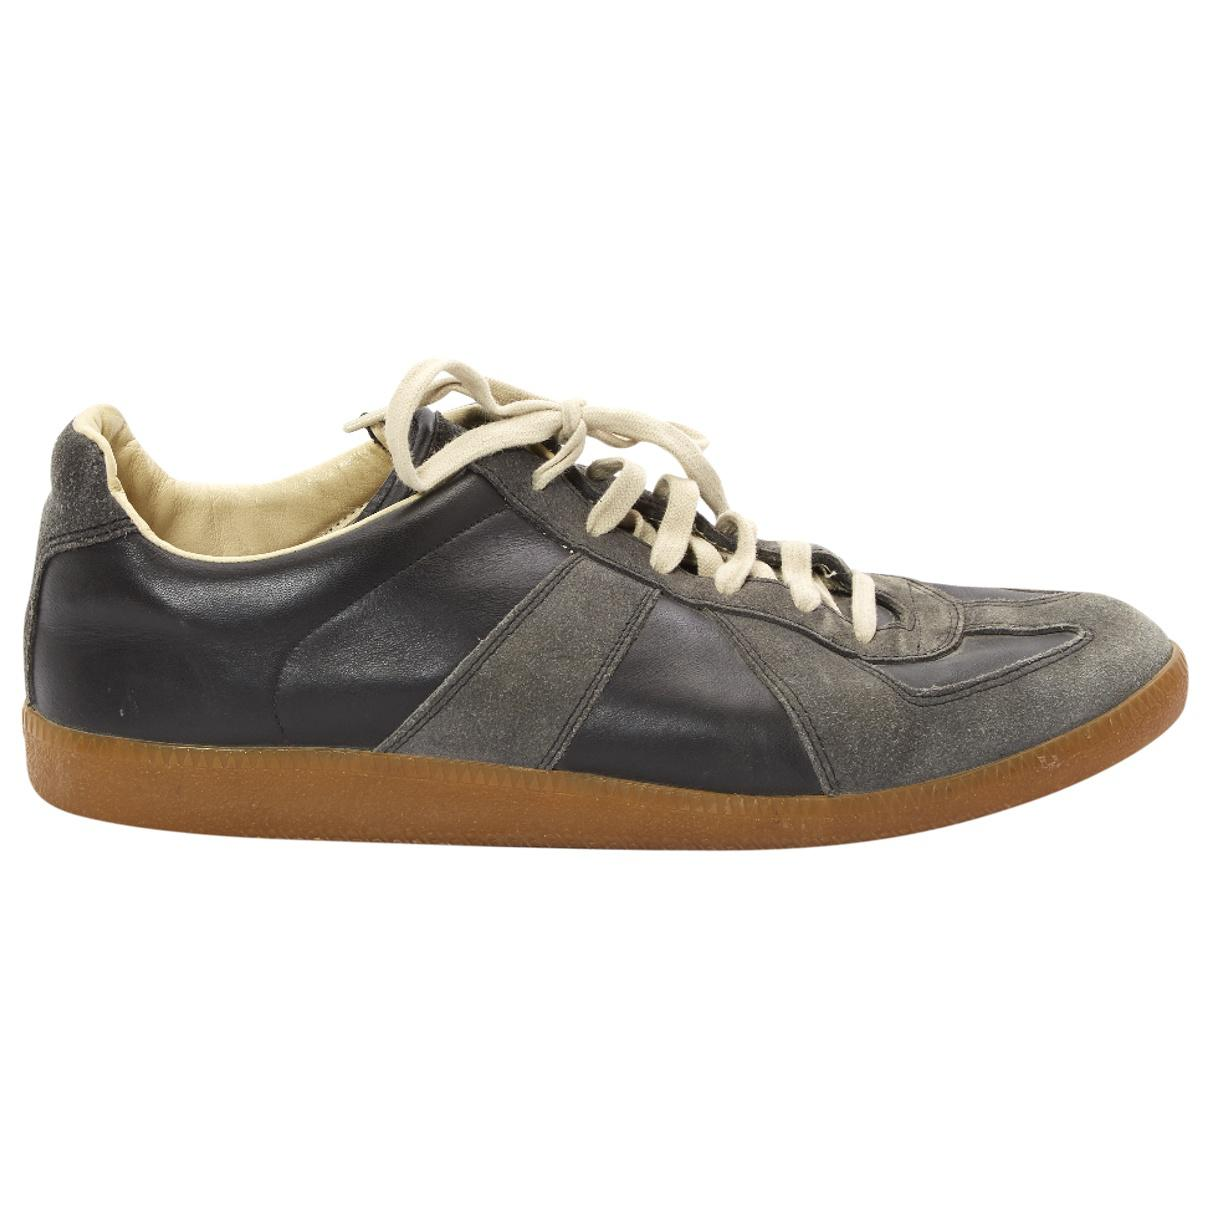 Pre-owned - Leather low trainers Maison Martin Margiela Y1lyn5z